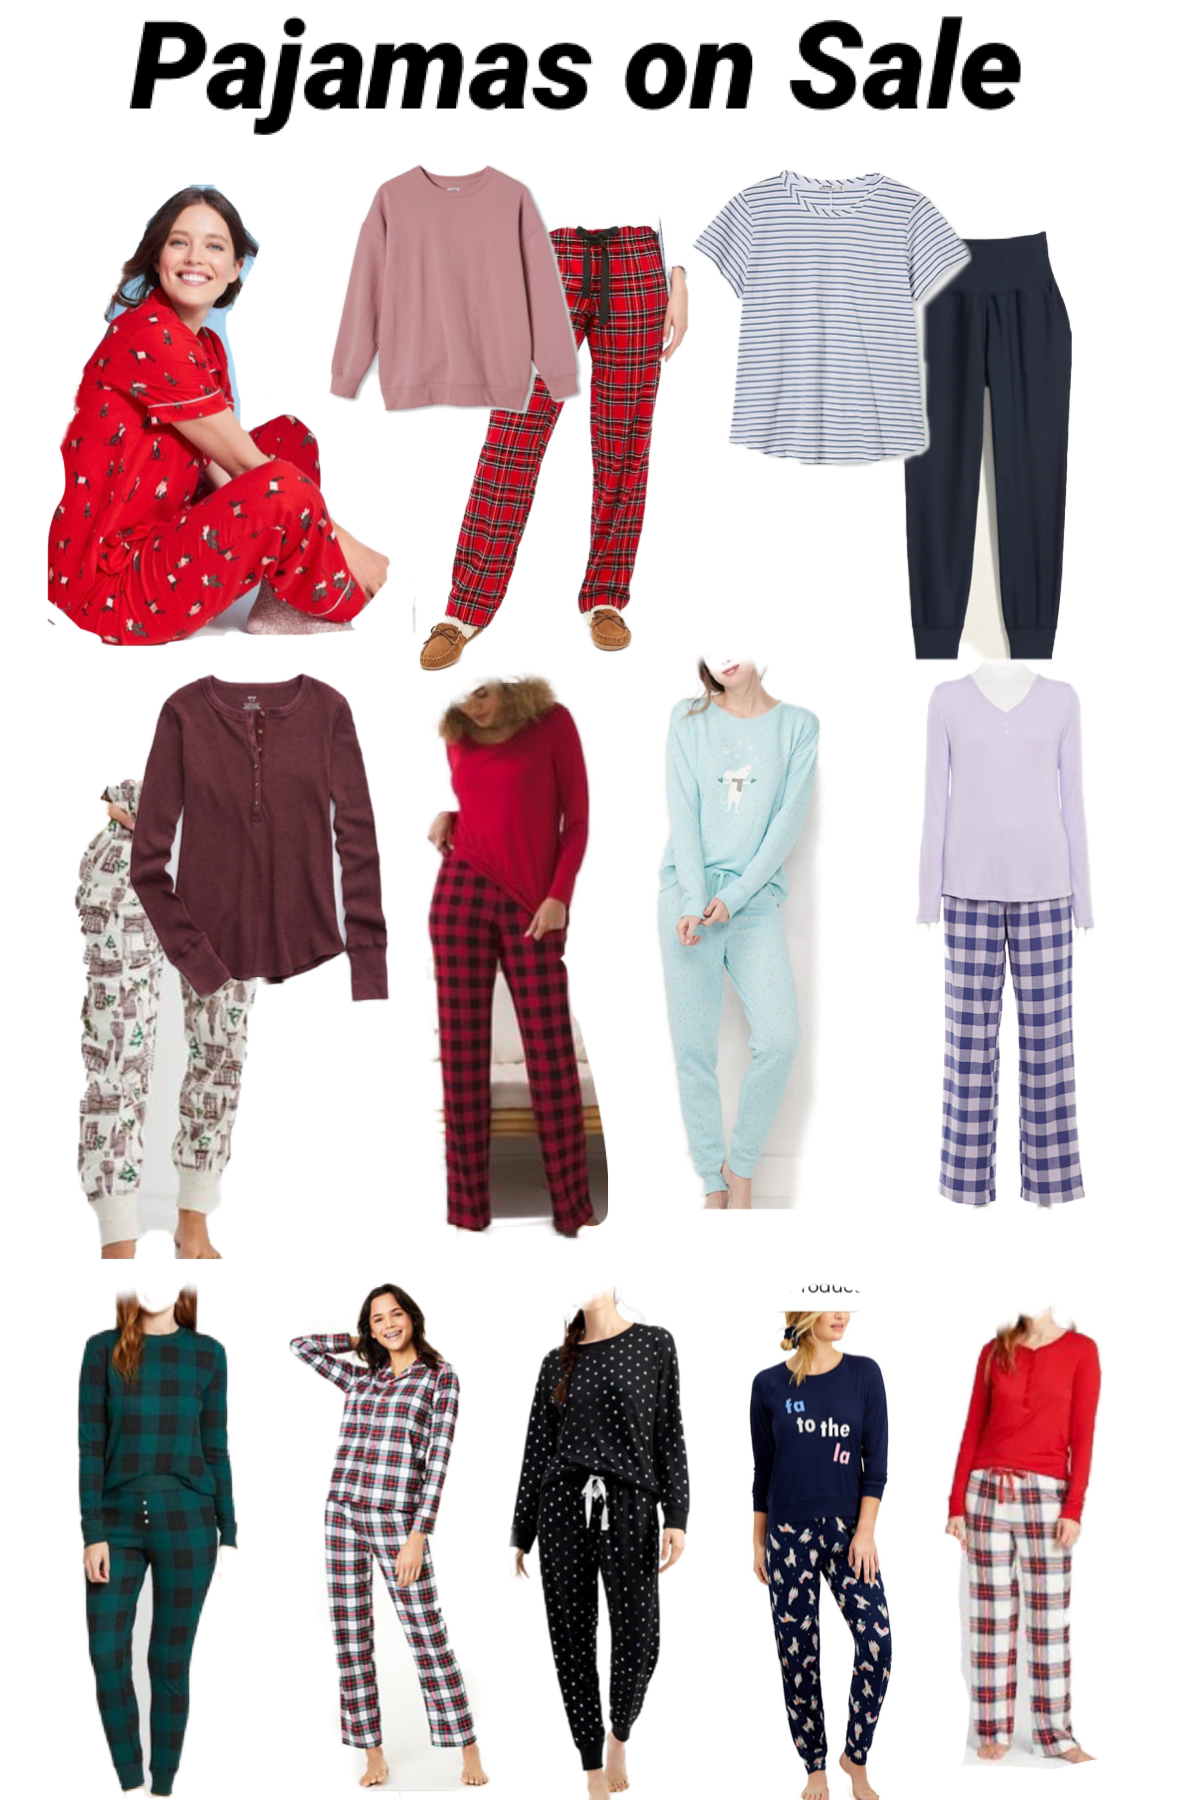 Cyber monday sales-Pajamas on sale |Green Beauty by popular Maryland beauty blog, Dreaming Loud: collage image of women's pajama sets.